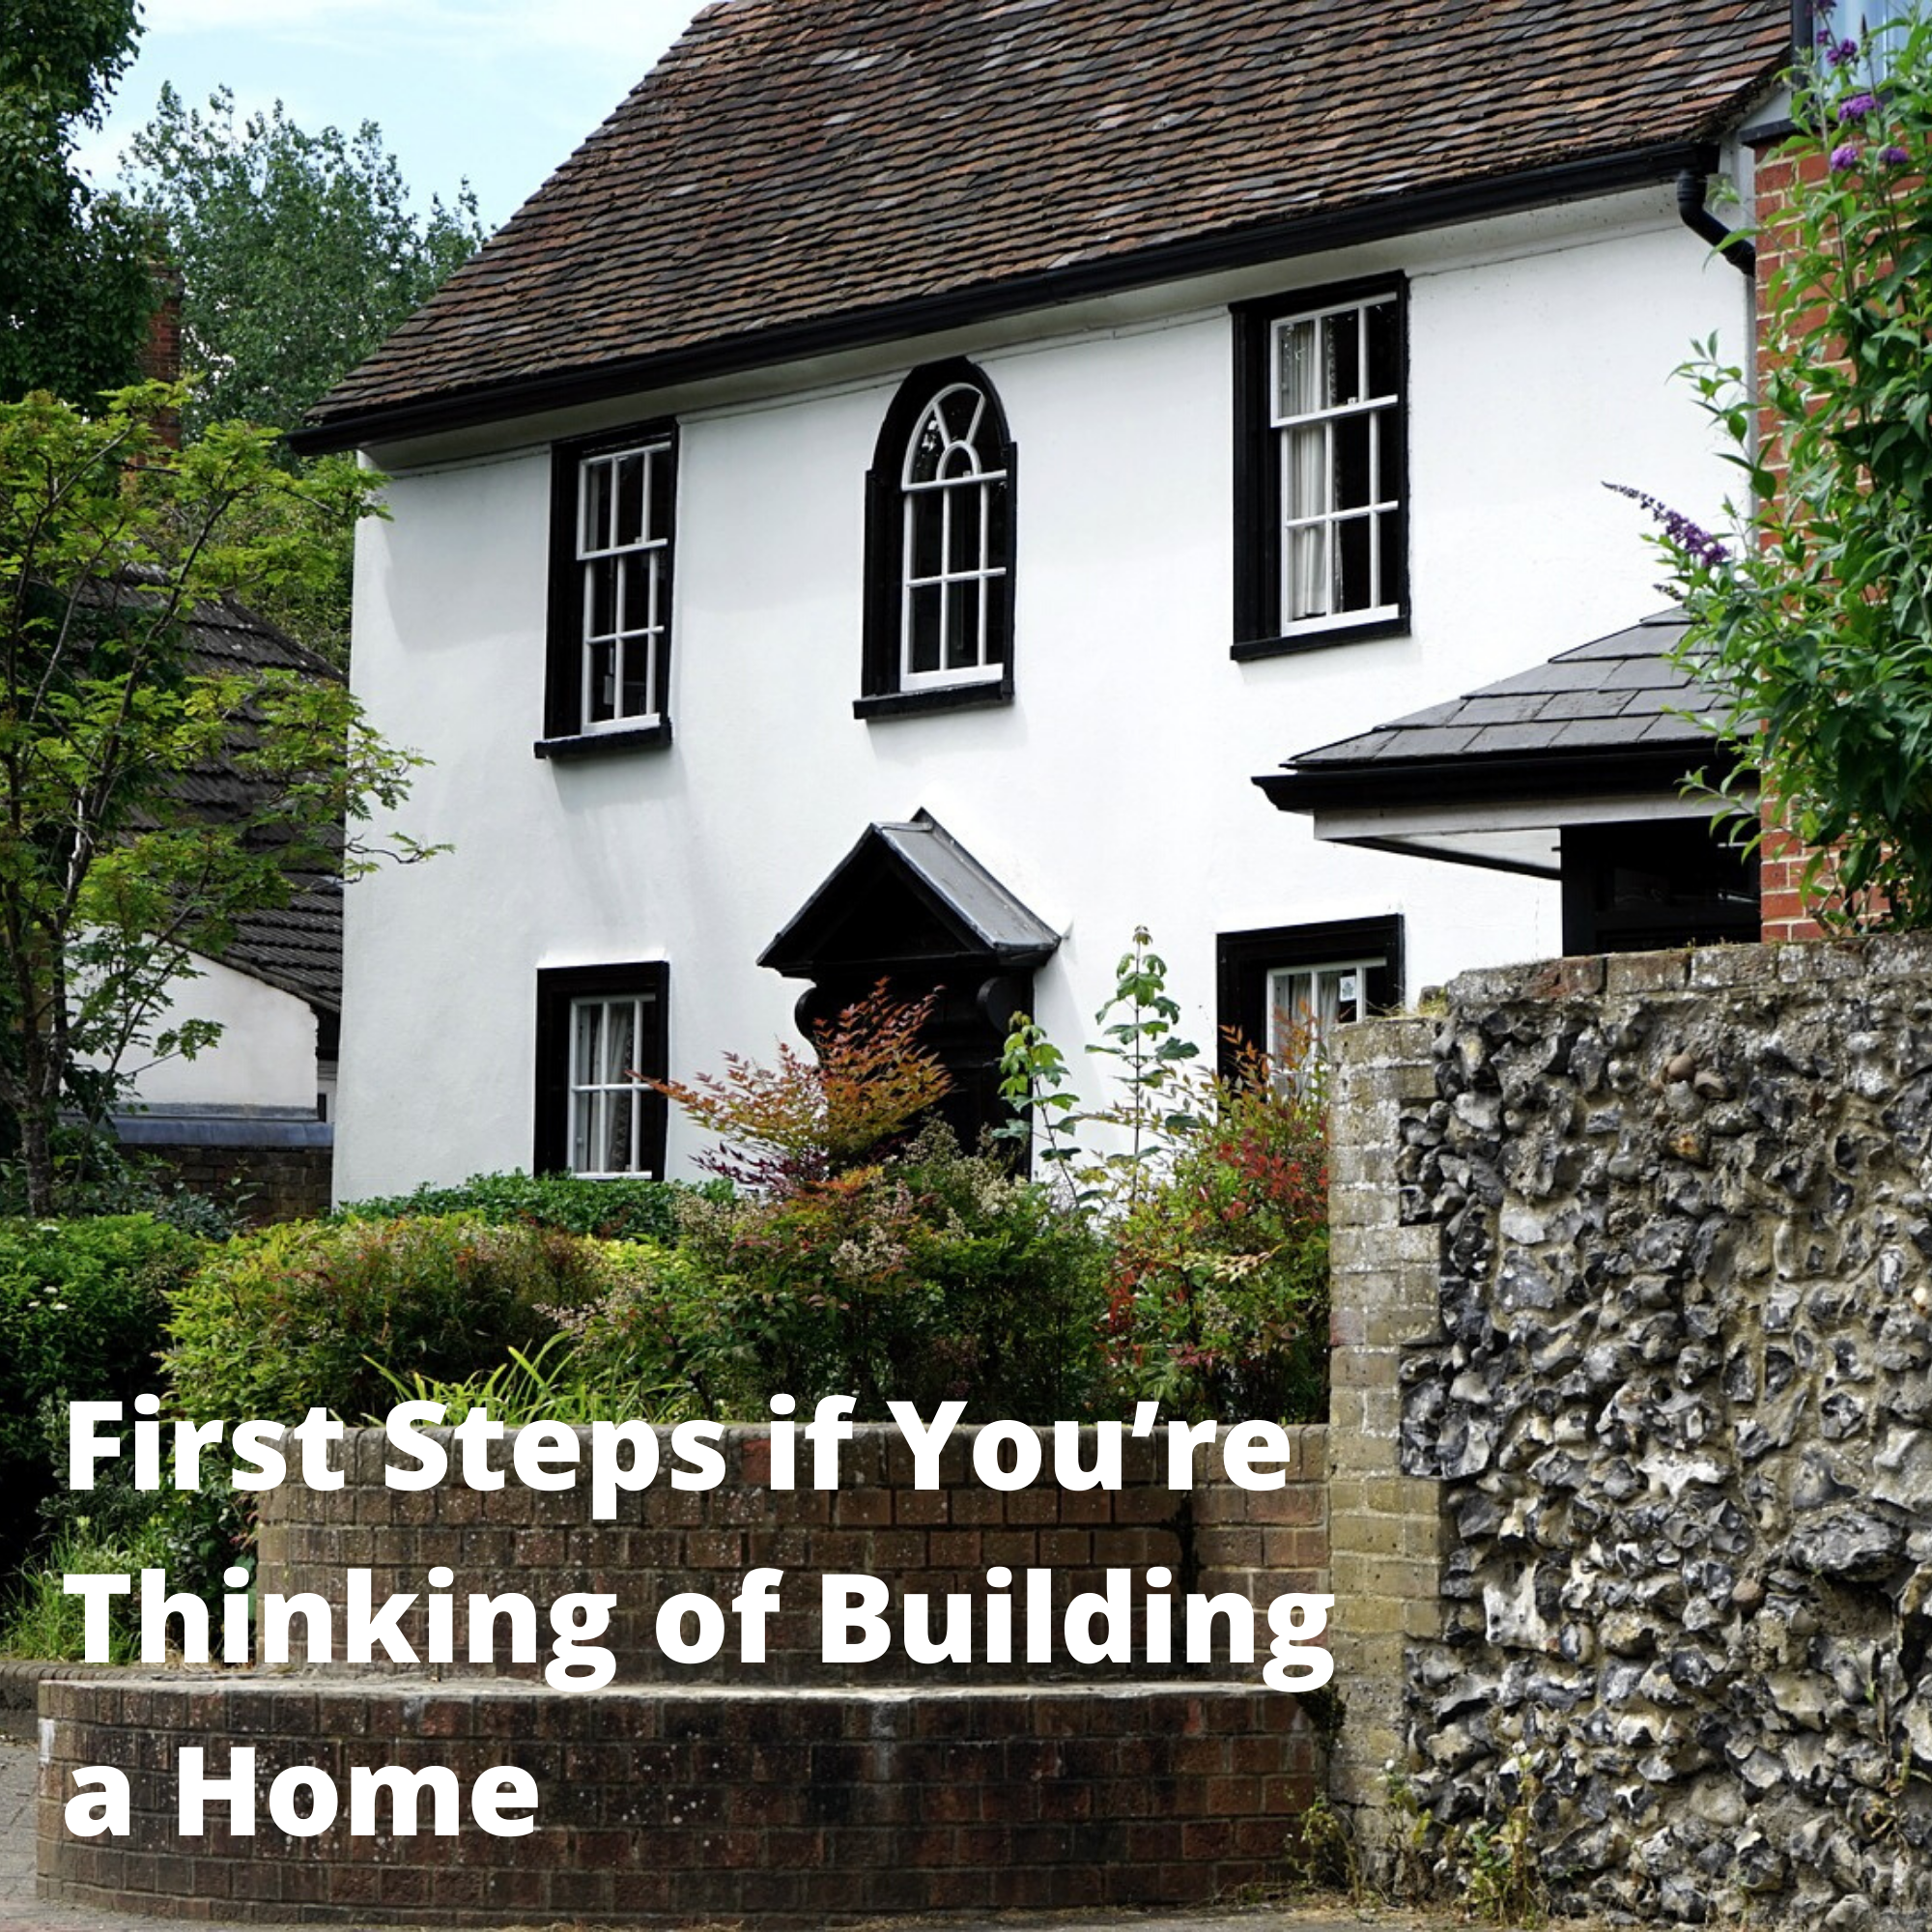 First Steps if You're Thinking of Building a Home